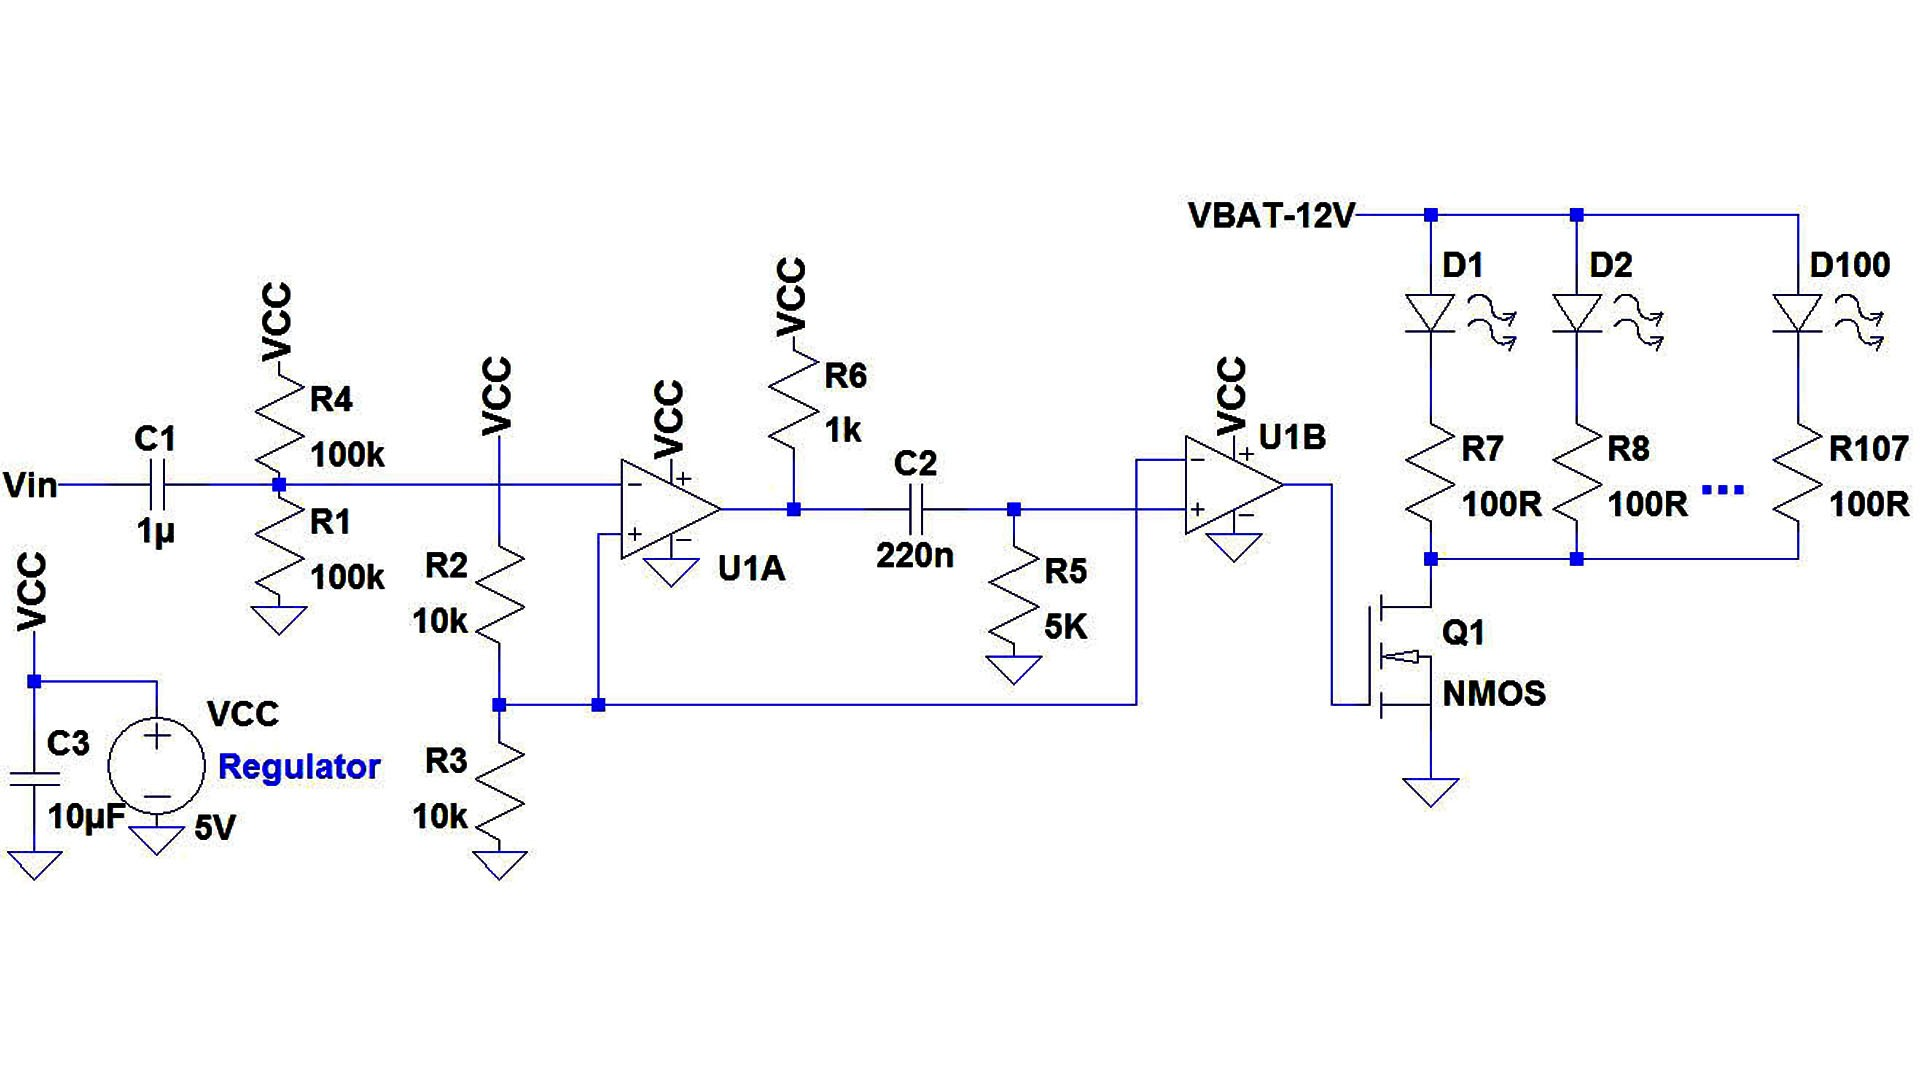 Lighthouse Led Flasher Schematics Ew 8875] Strobe Light Circuit with Chasing Flashing Effects Of Lighthouse Led Flasher Schematics